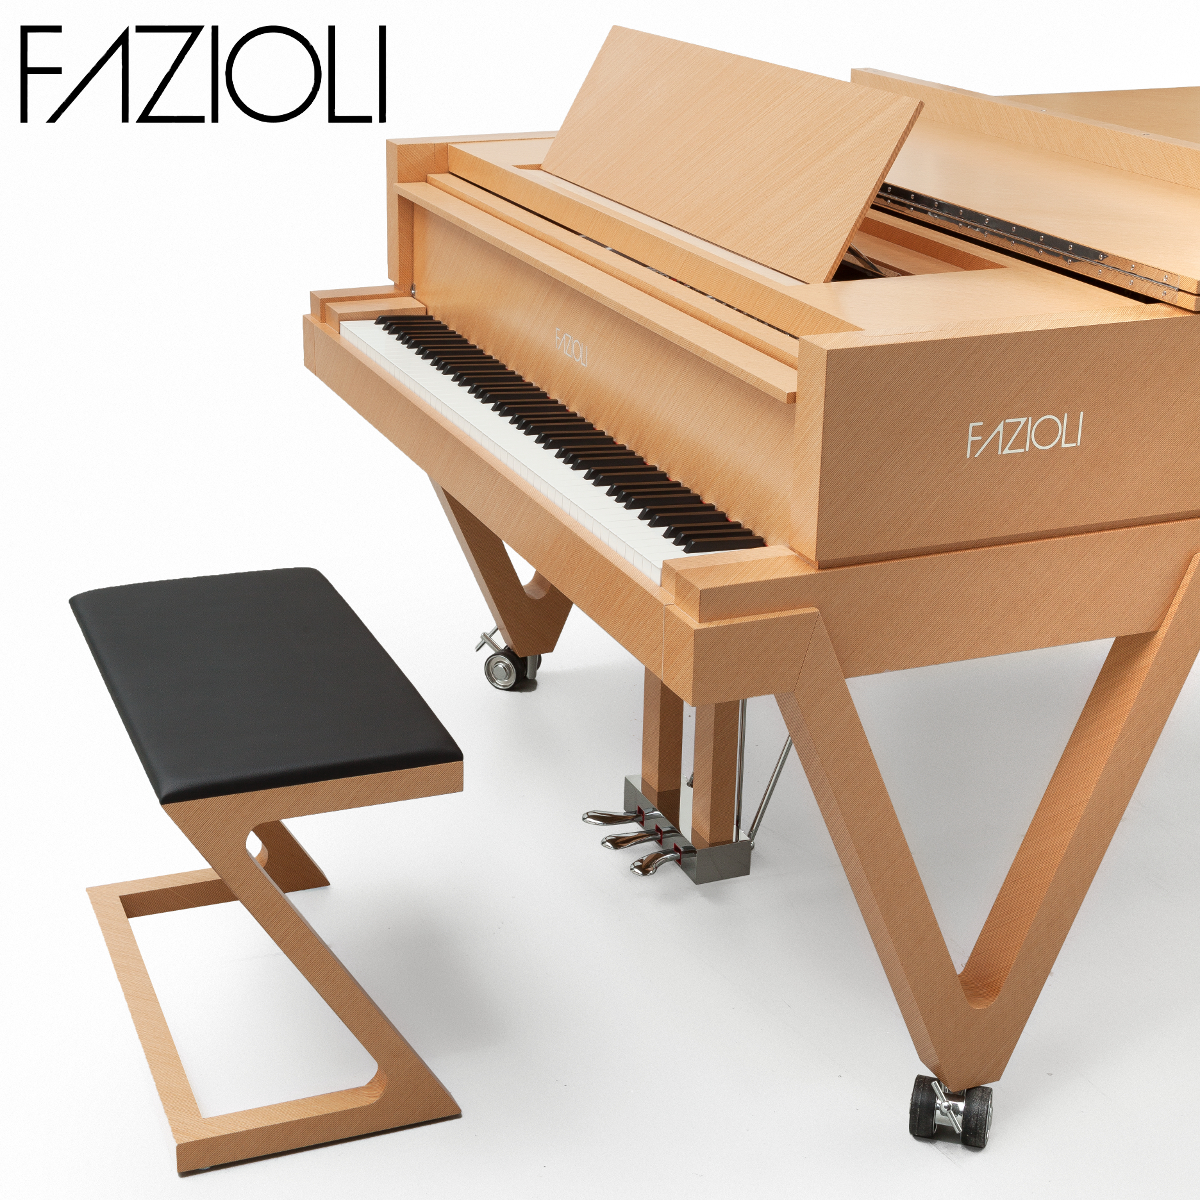 Fazioli ebony concert grand